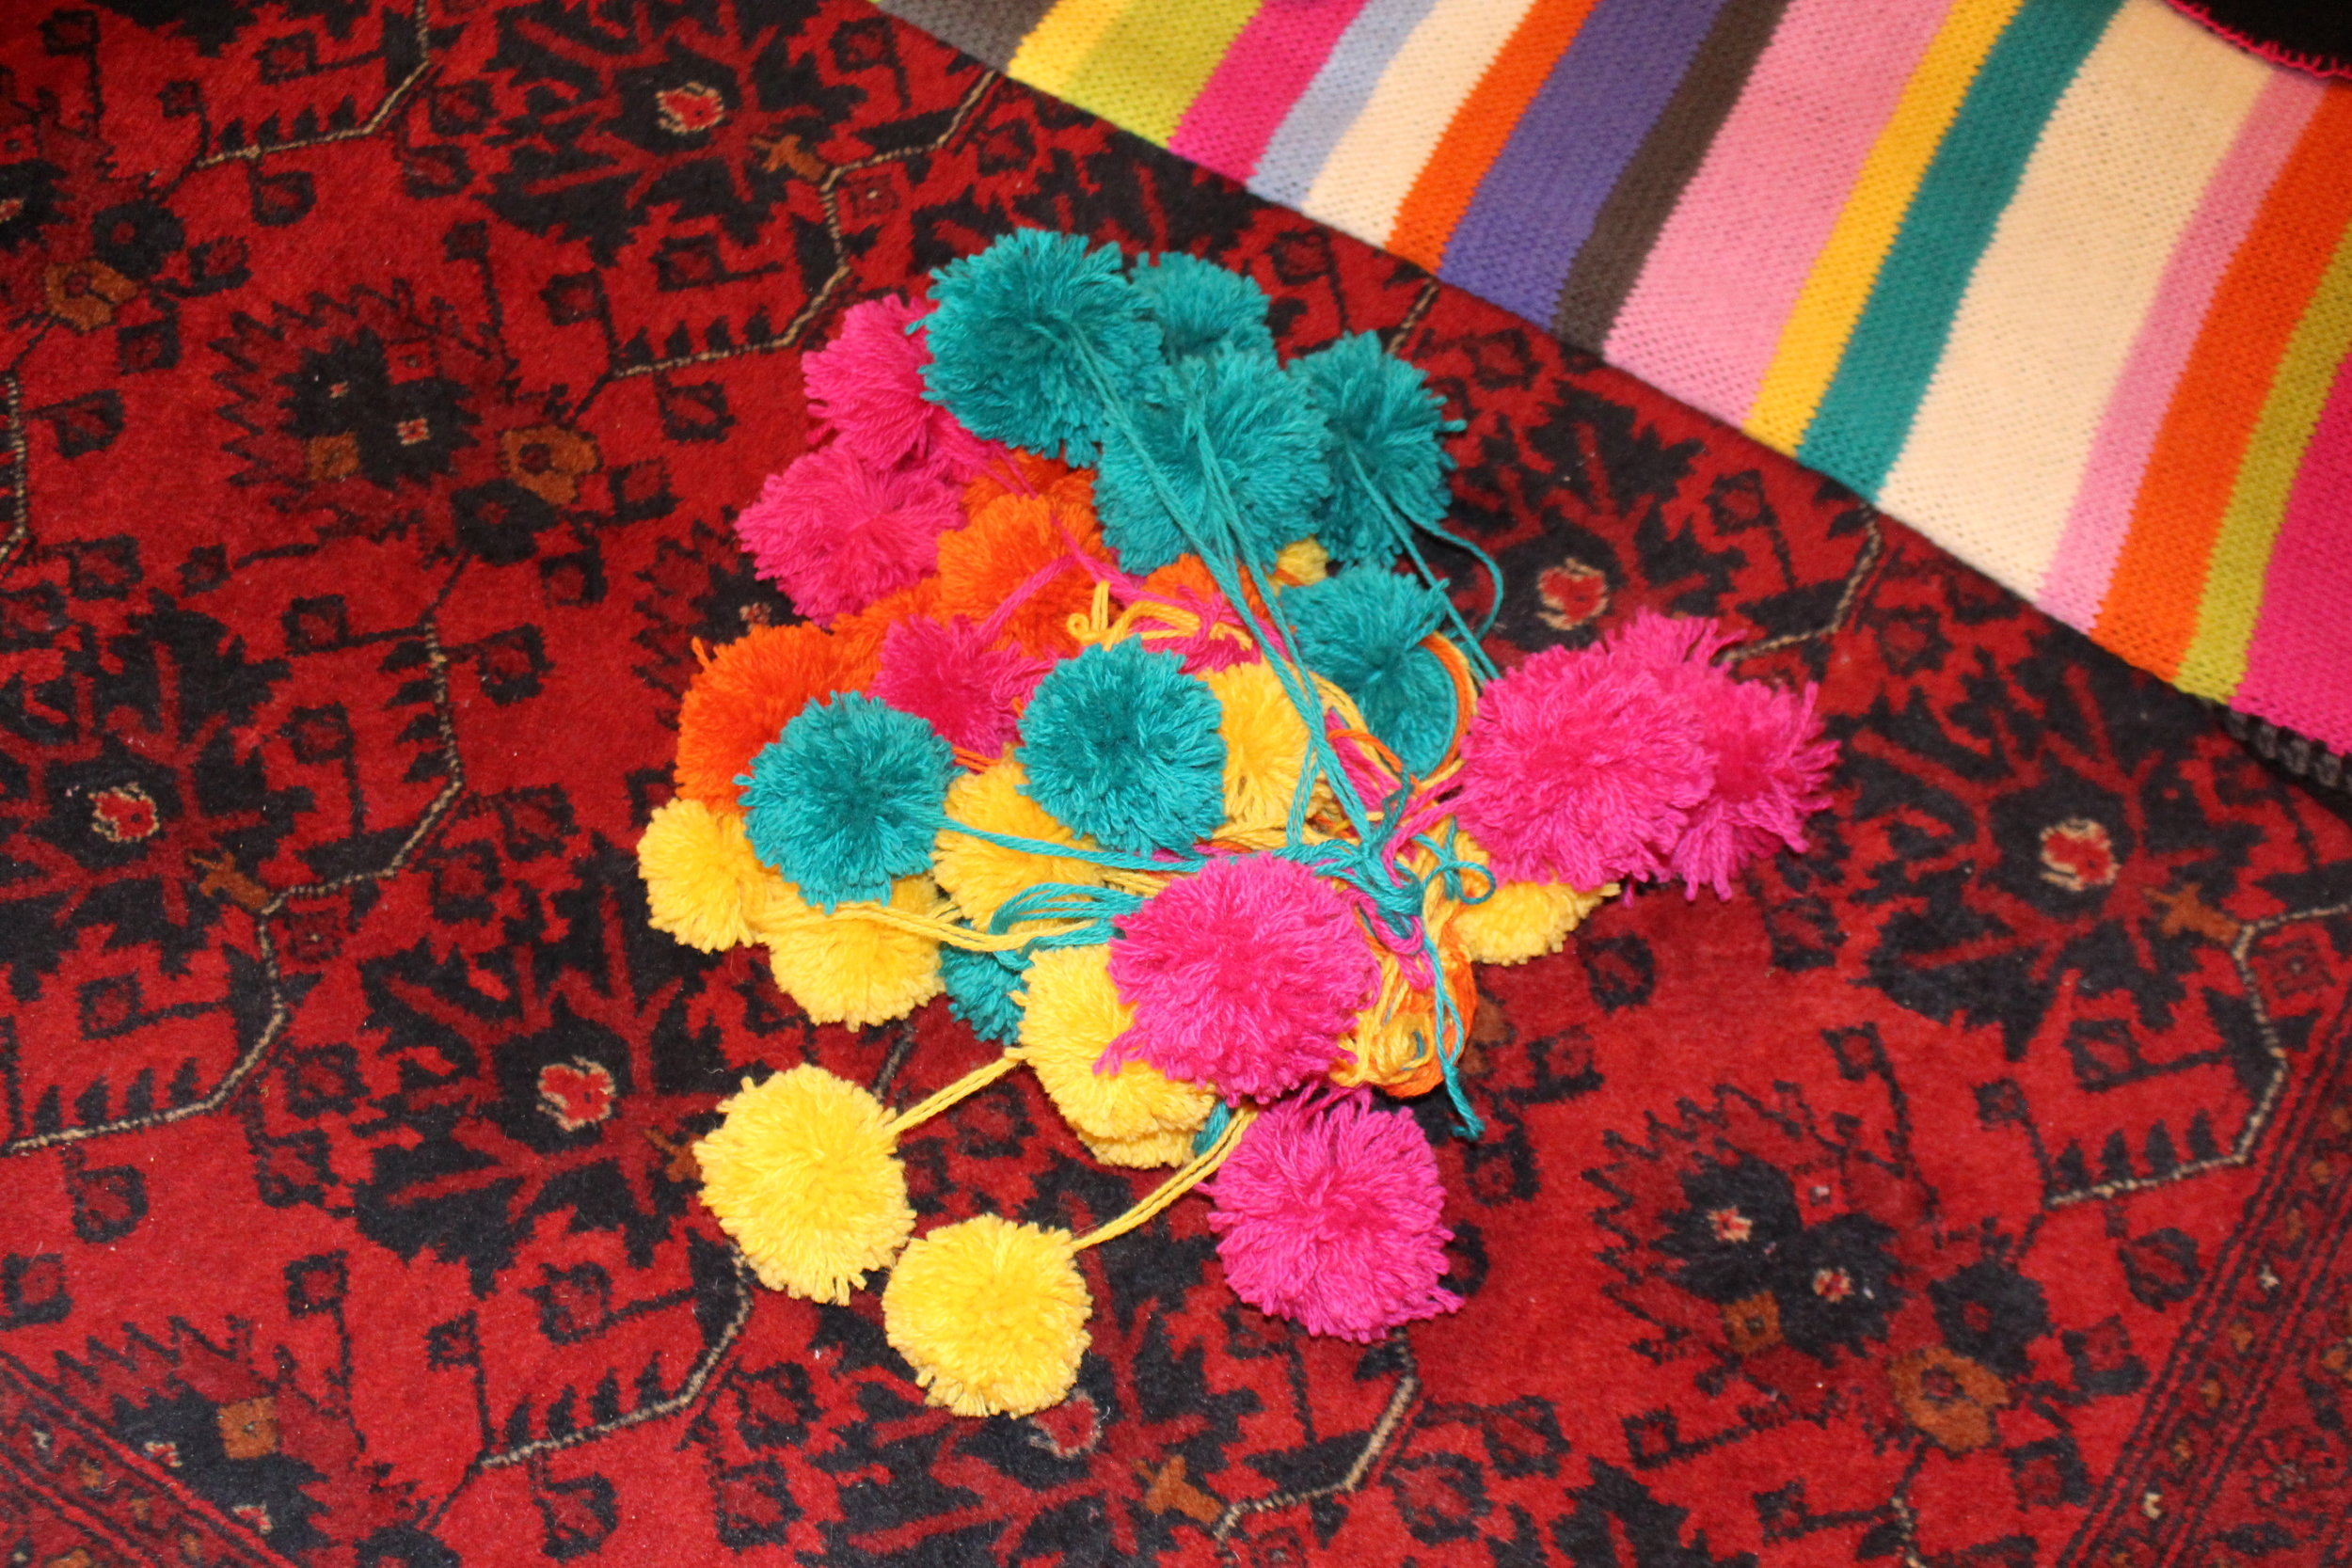 Get a friend to make some pom poms (thanks Merrie!) ...